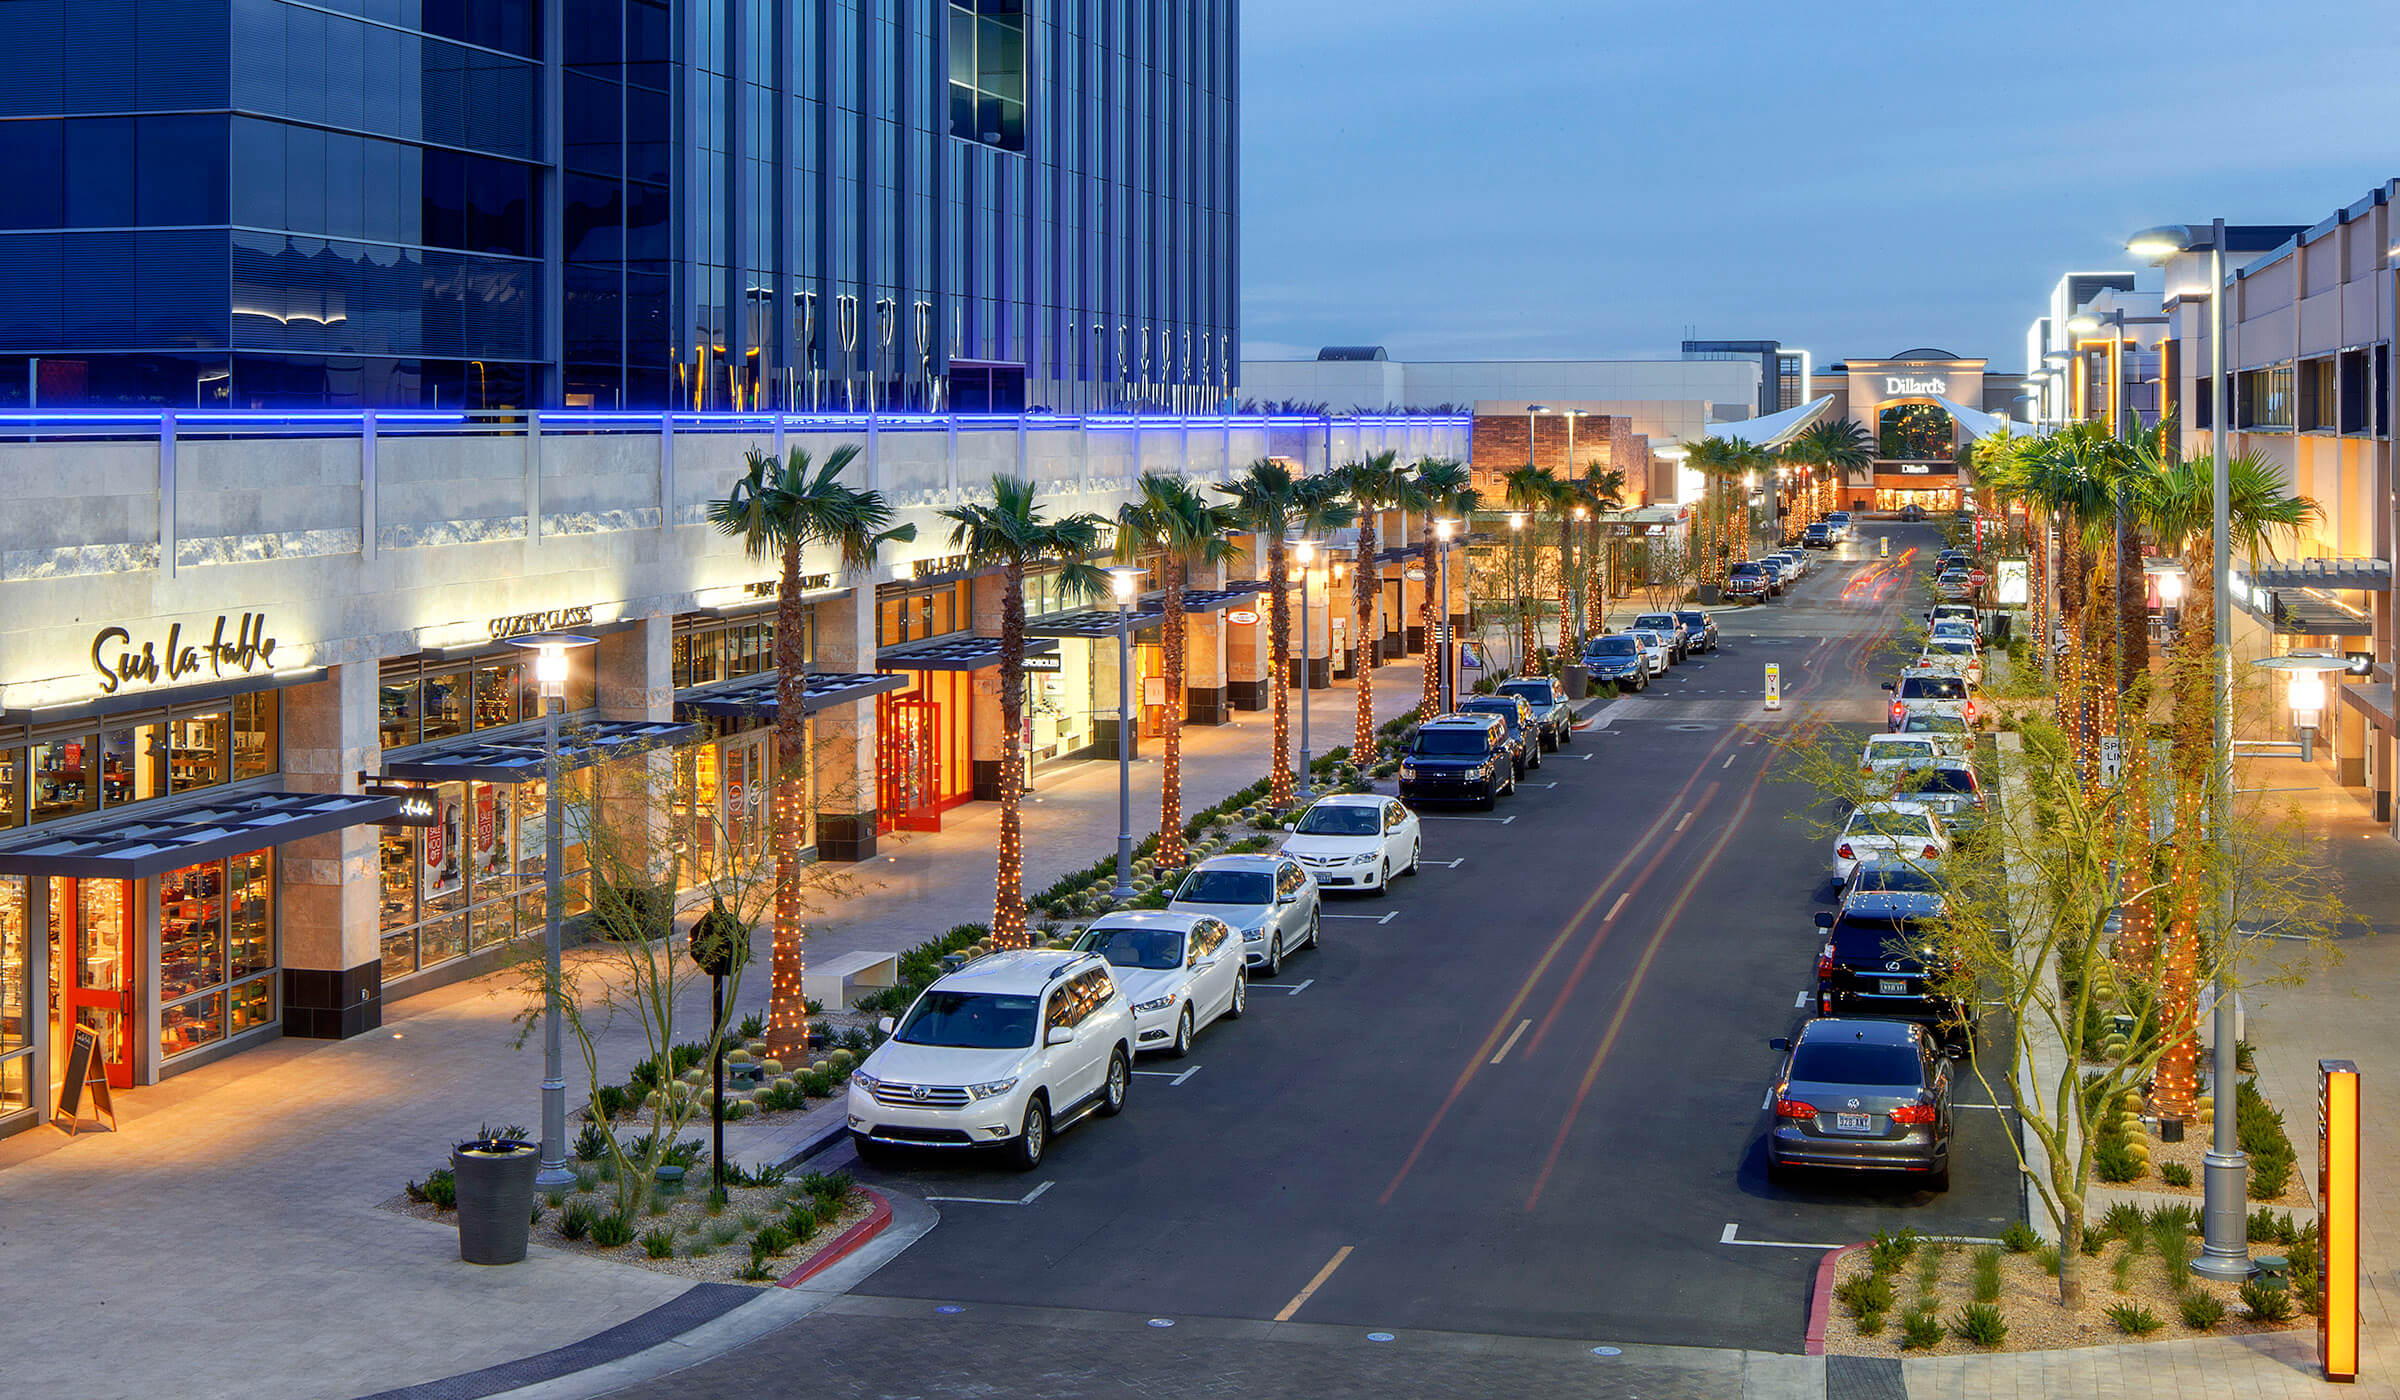 SUM_Downtown_Summerlin_032715.jpg